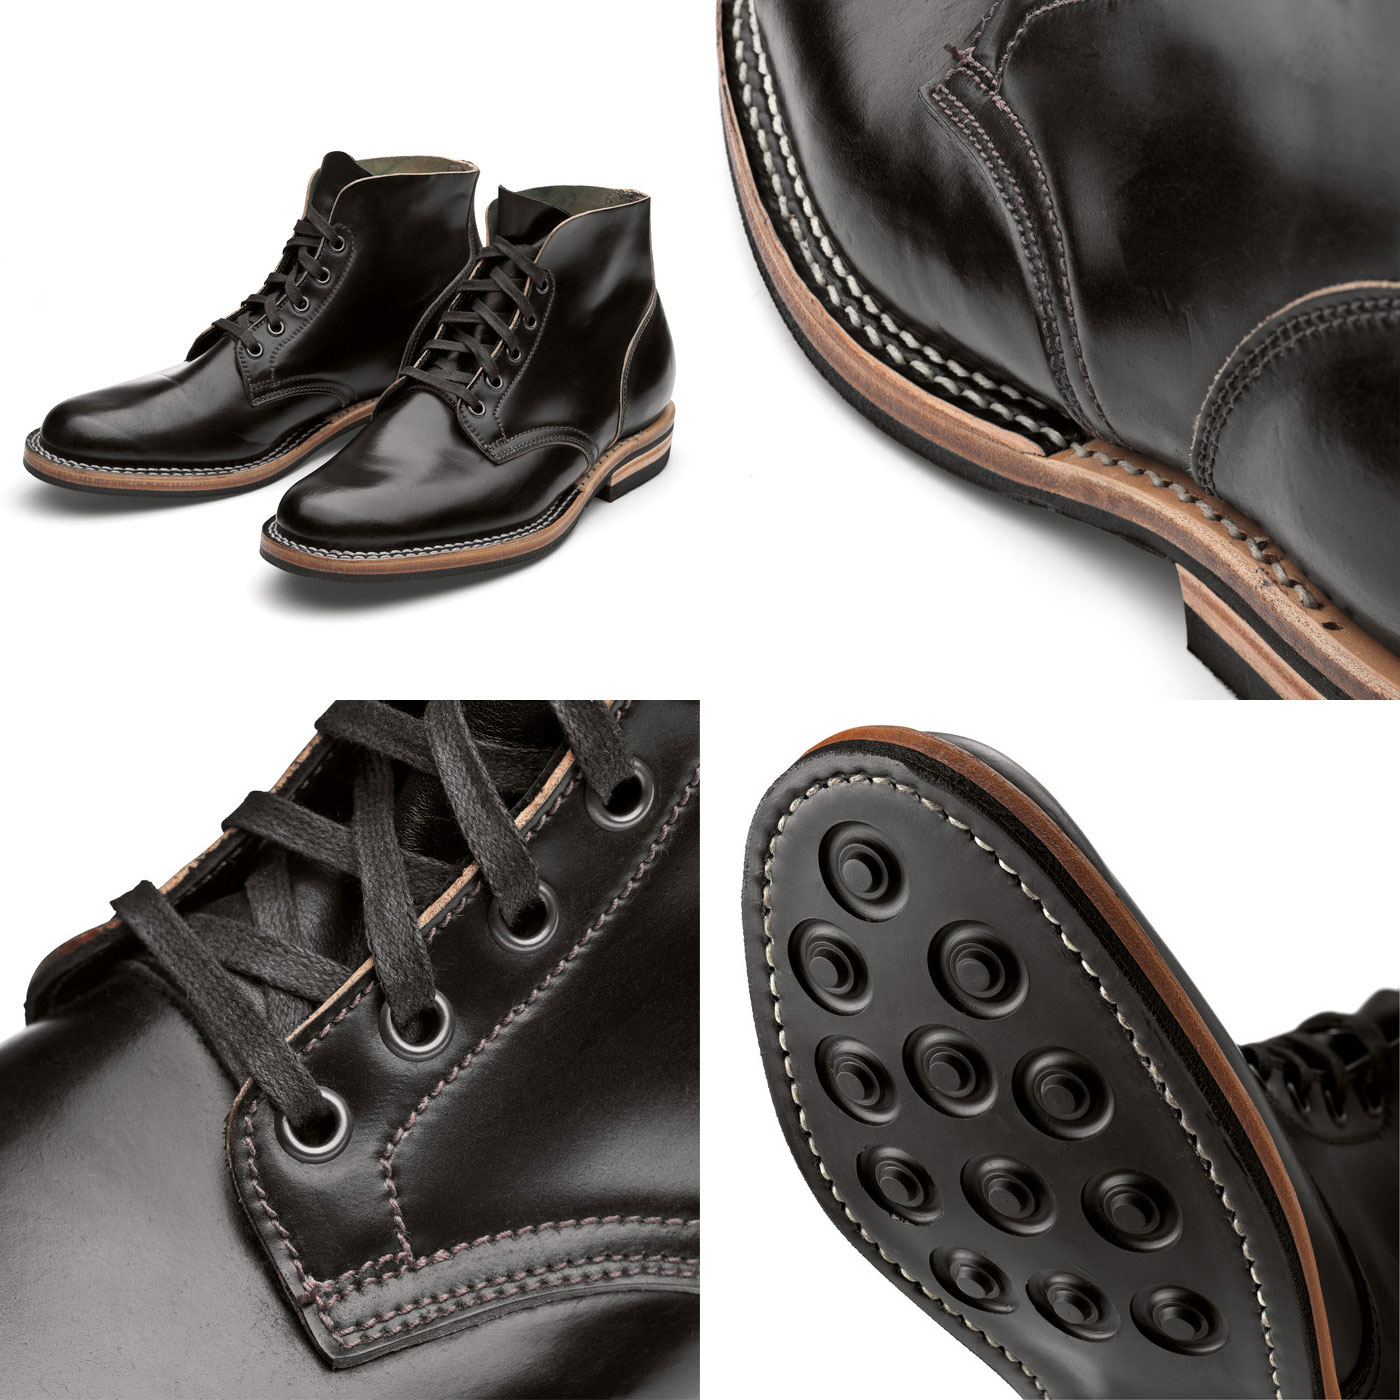 Viberg Shell Cordovan Boot details